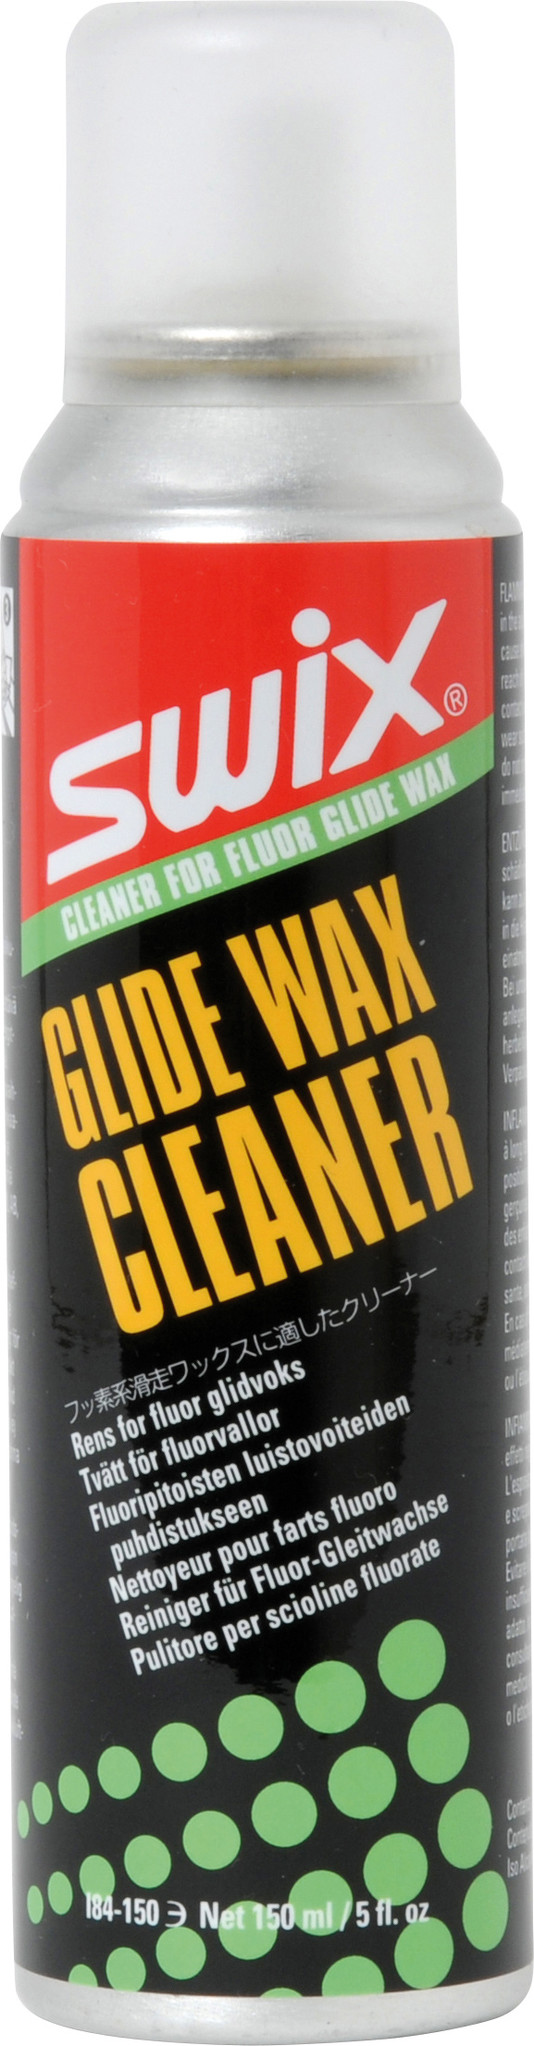 Swix Glide Wax Cleaner 150ml